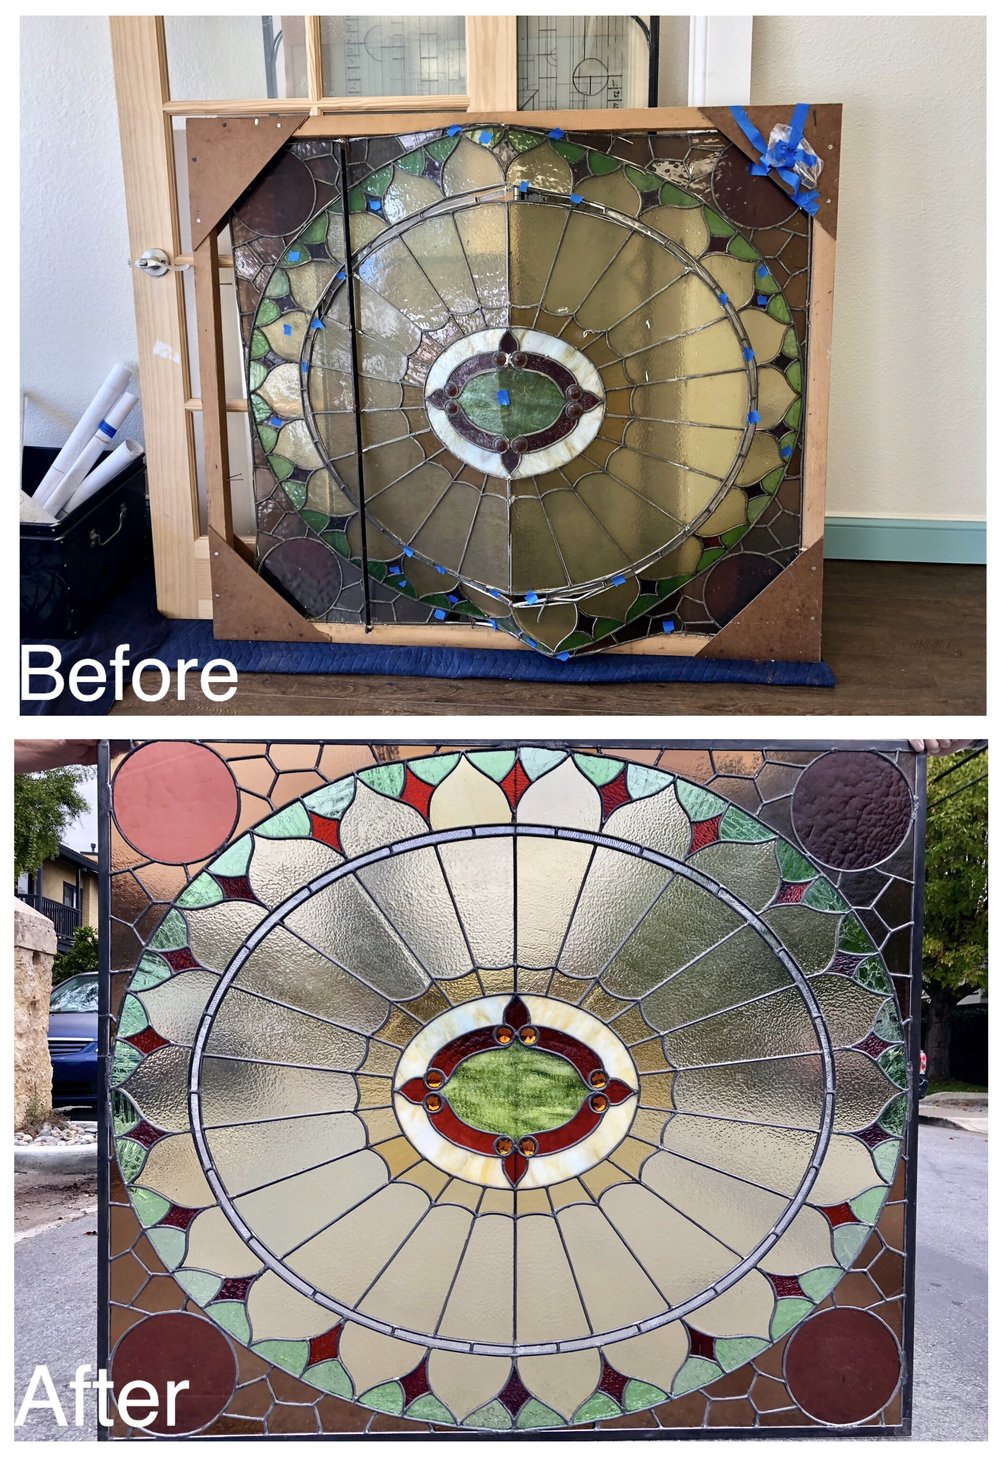 stained glass art glass bay area legacy glass studios antique glass old repair bevels textured ripple glass restoration repurpose restored glass amber brown circle traditional jewels green red clear cream border before after.jpg